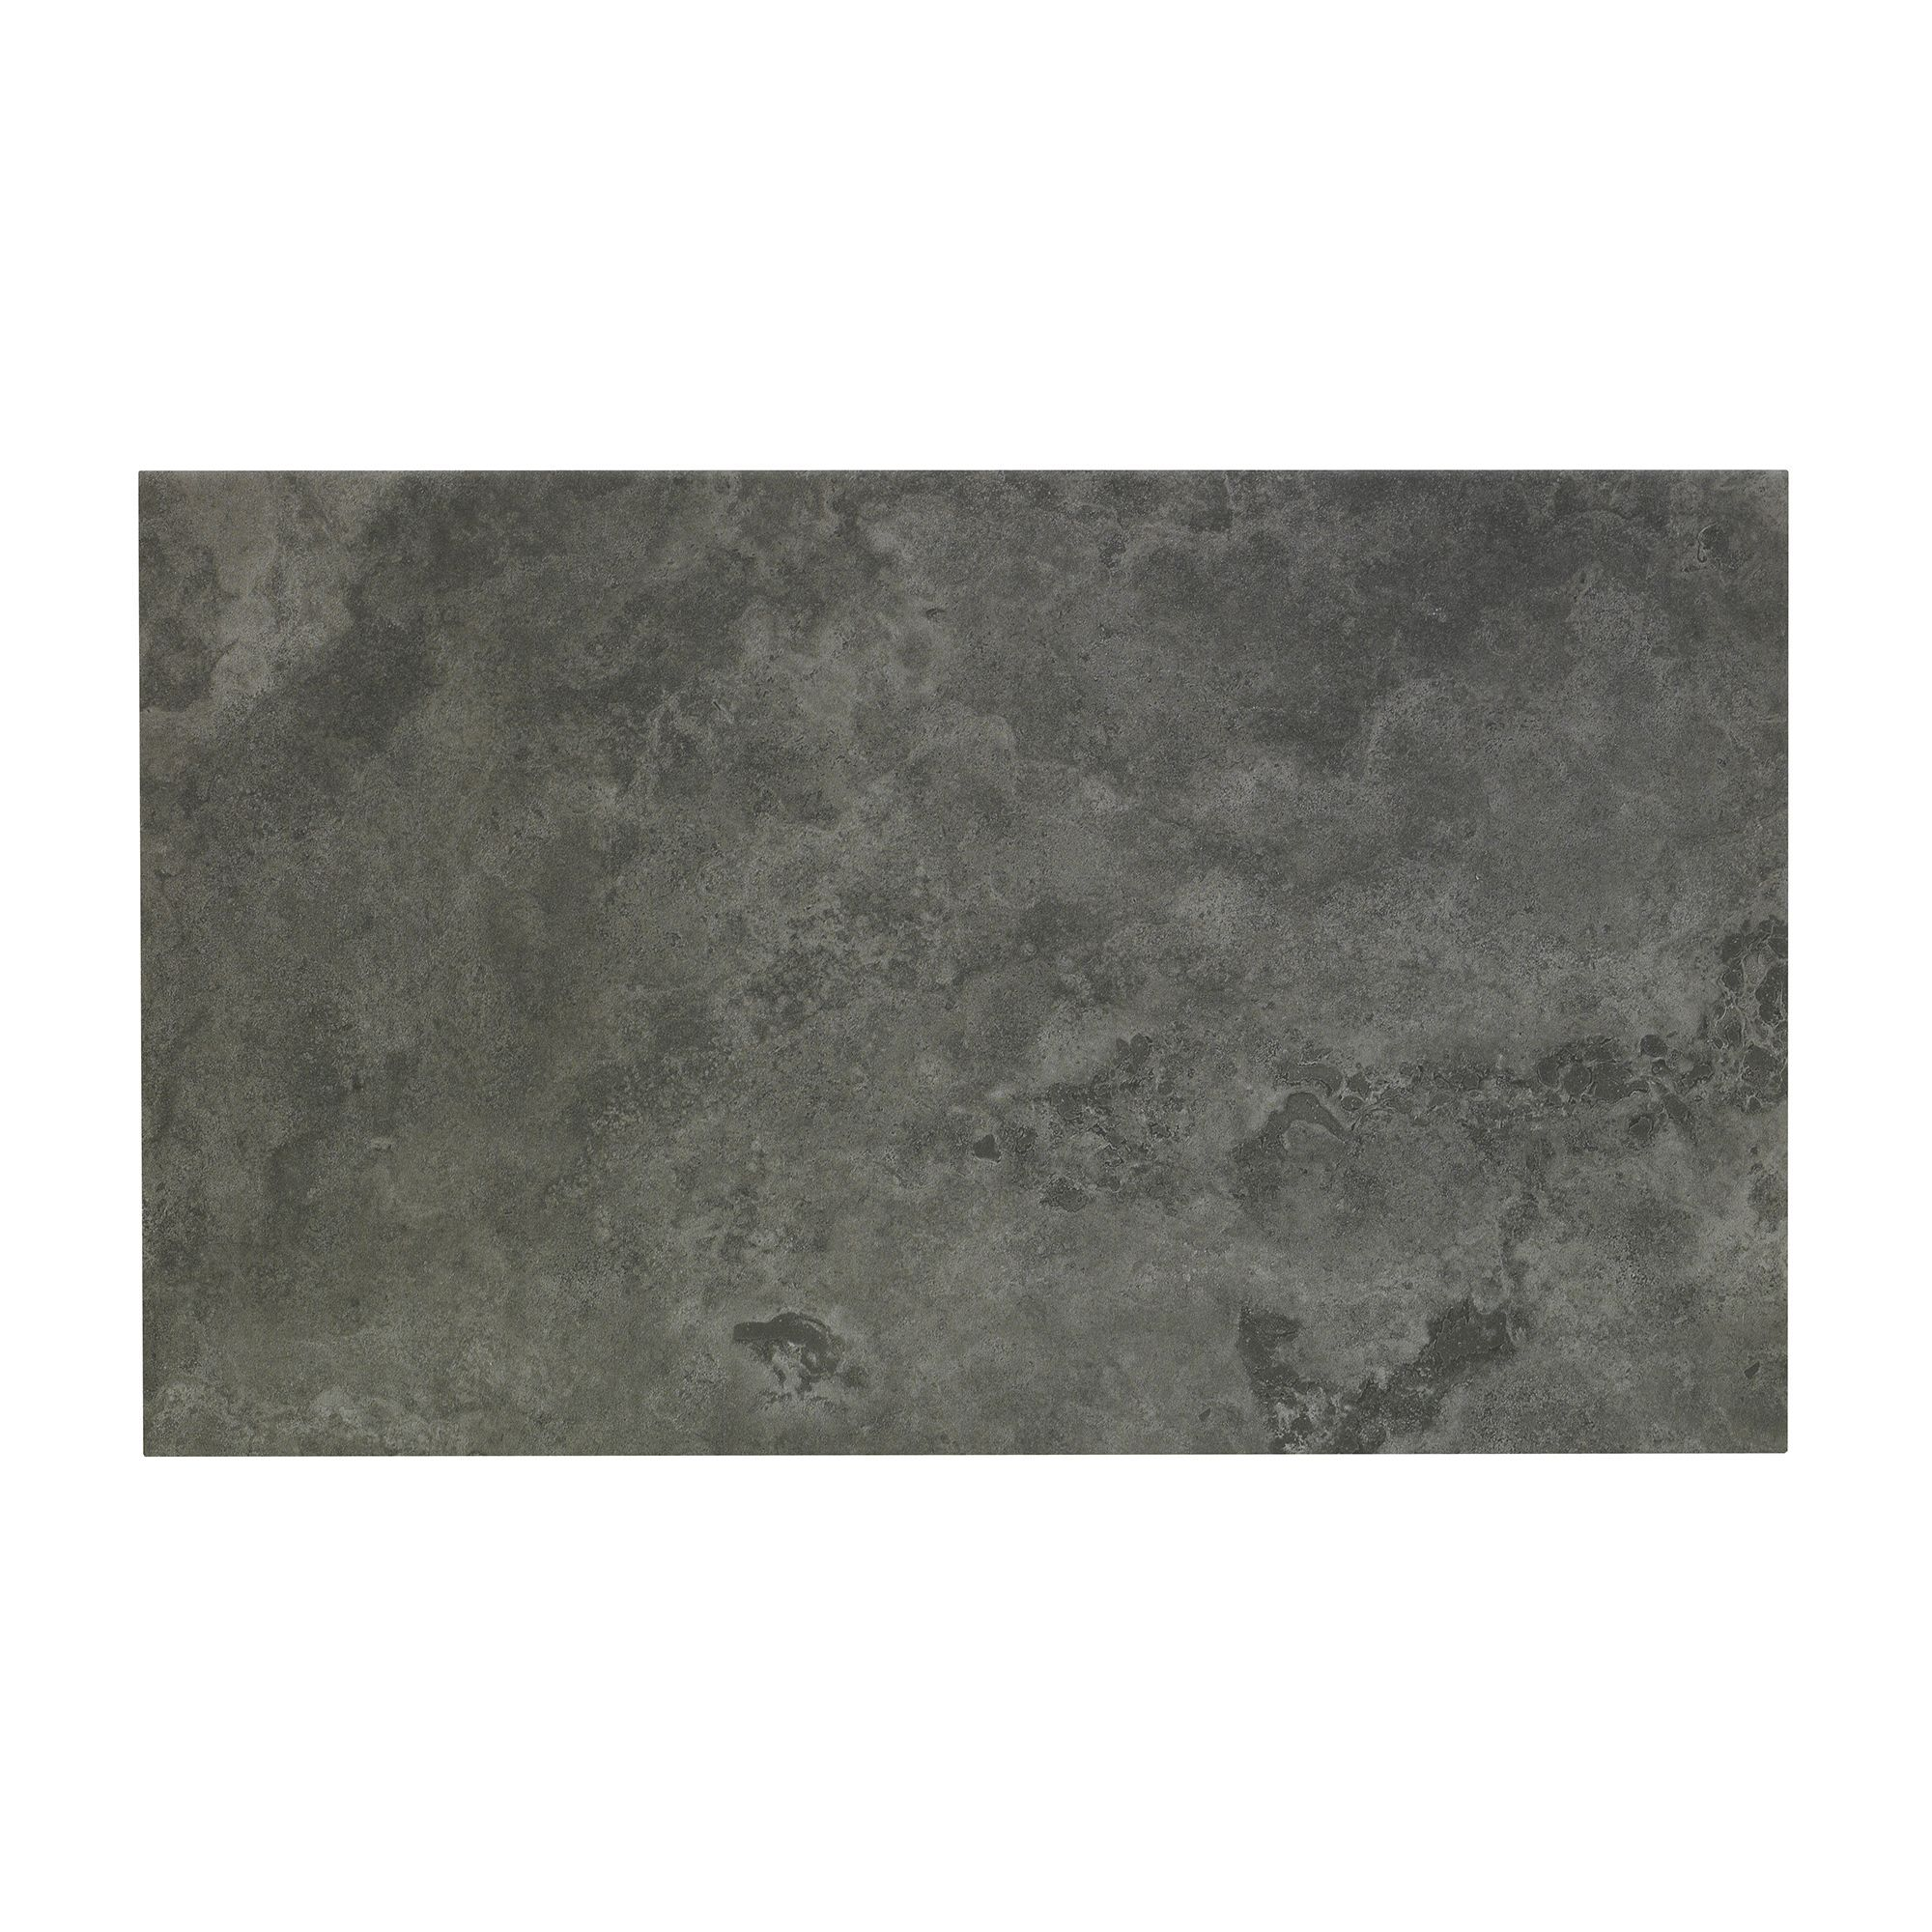 Oscano graphite stone effect ceramic wall floor tile pack of 6 oscano graphite stone effect ceramic wall floor tile pack of 6 l498mm w298mm dailygadgetfo Choice Image